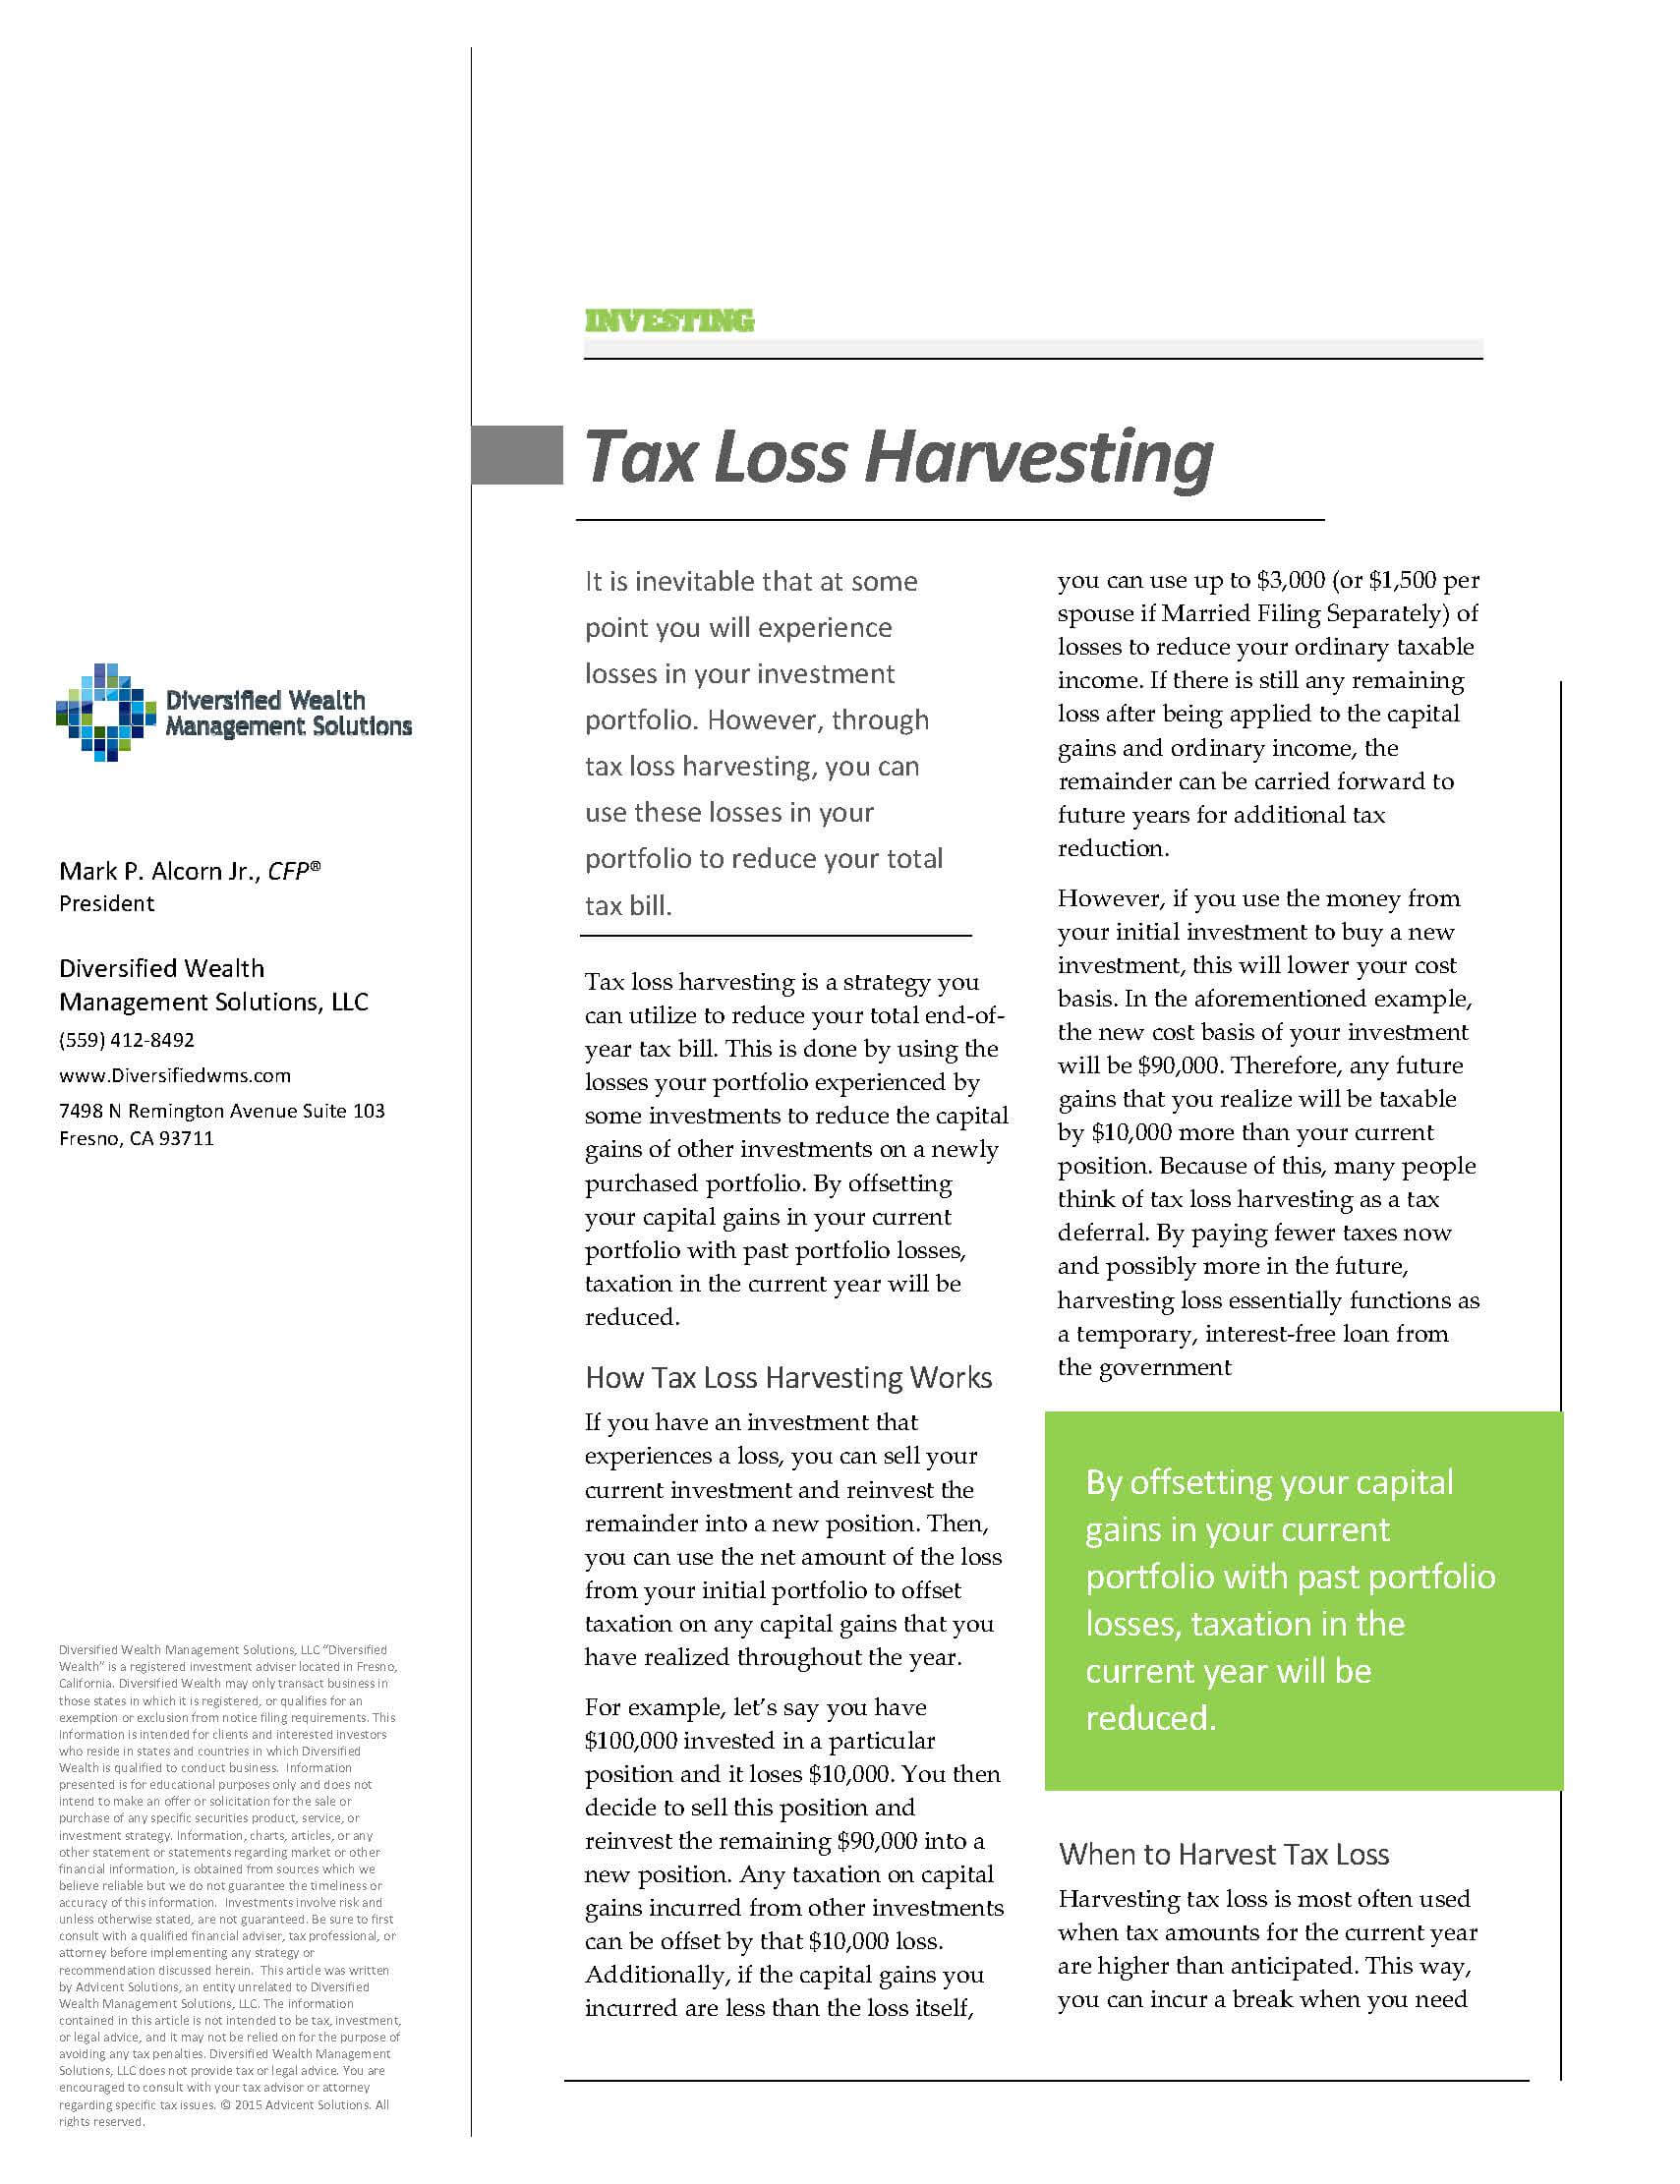 Tax Loss Harvesting - Diversified Wealth Management Solutions